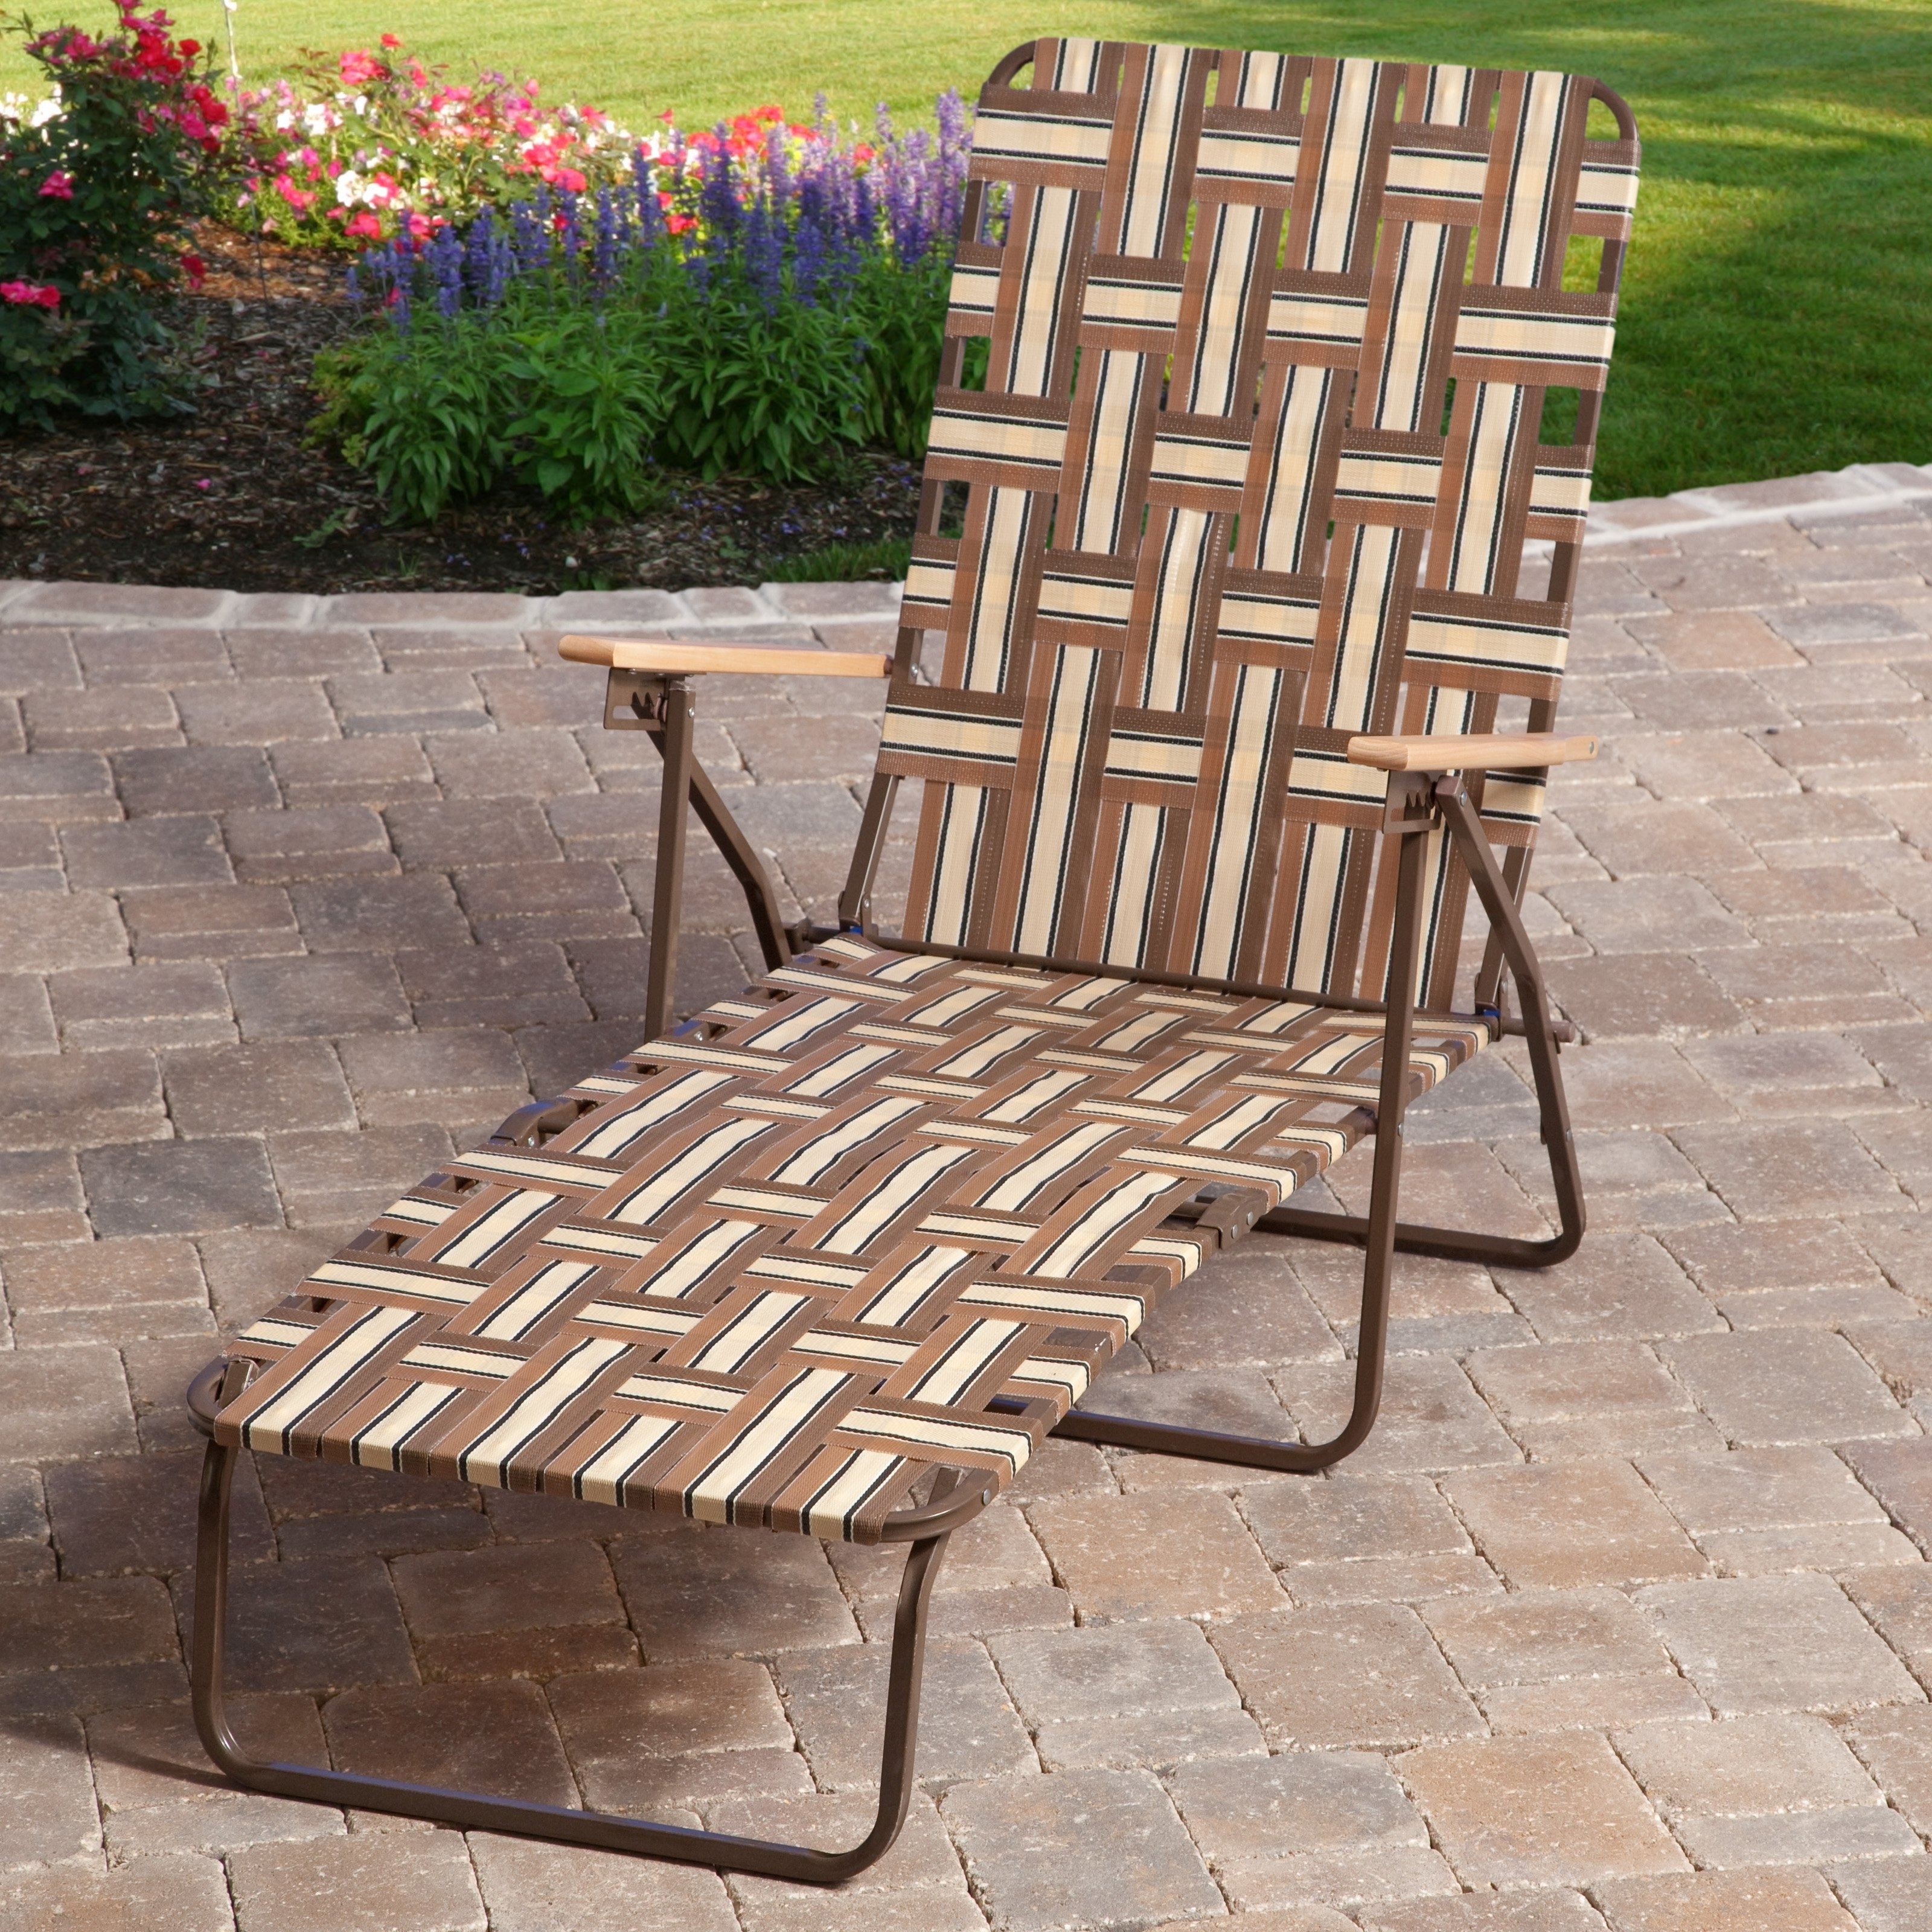 Rio Deluxe Folding Web Chaise Lounge – Walmart Regarding Latest Folding Chaise Lounge Chairs For Outdoor (View 7 of 15)